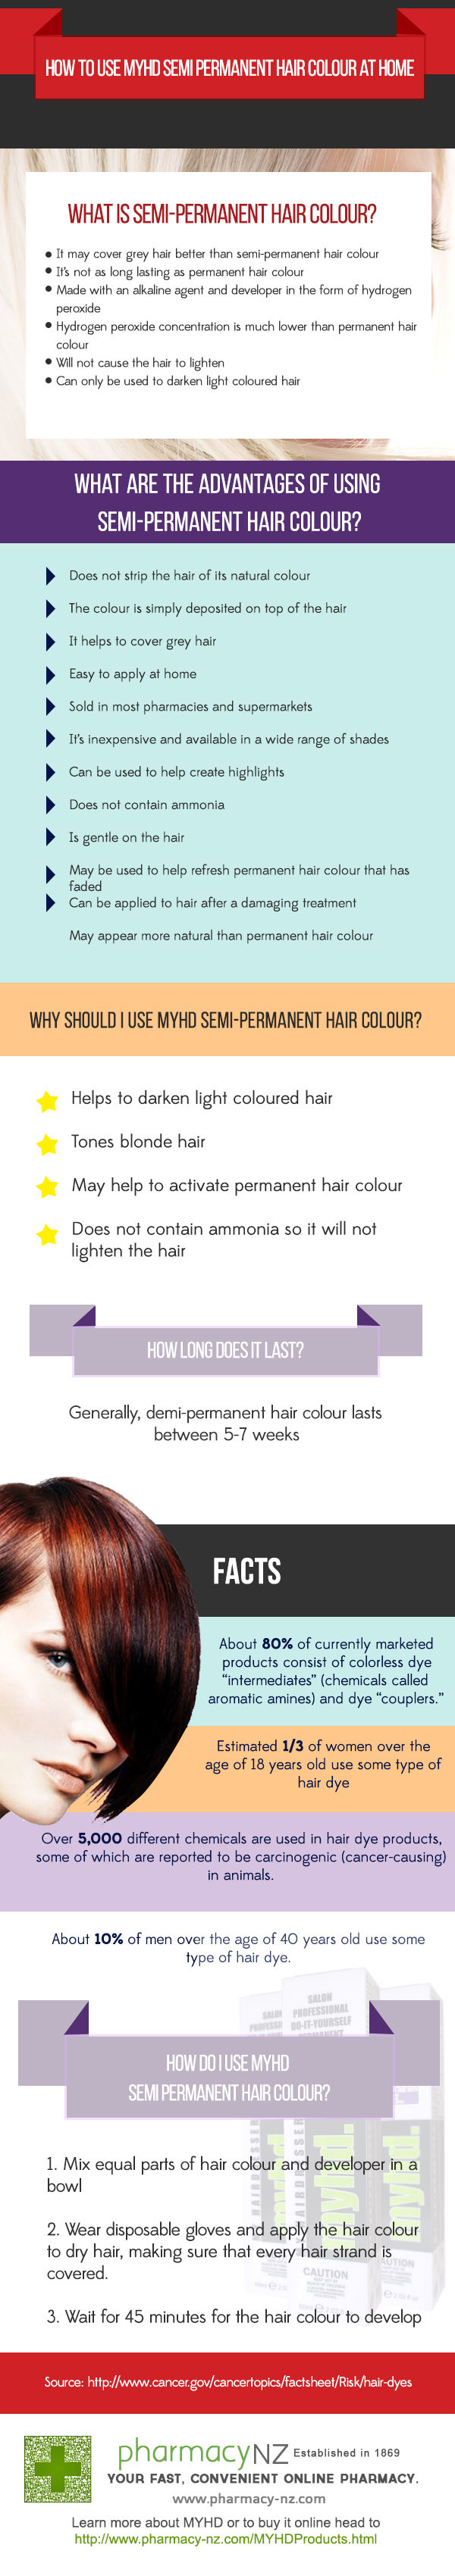 How to Use MYHD Semi Permanent Hair Colour at Home